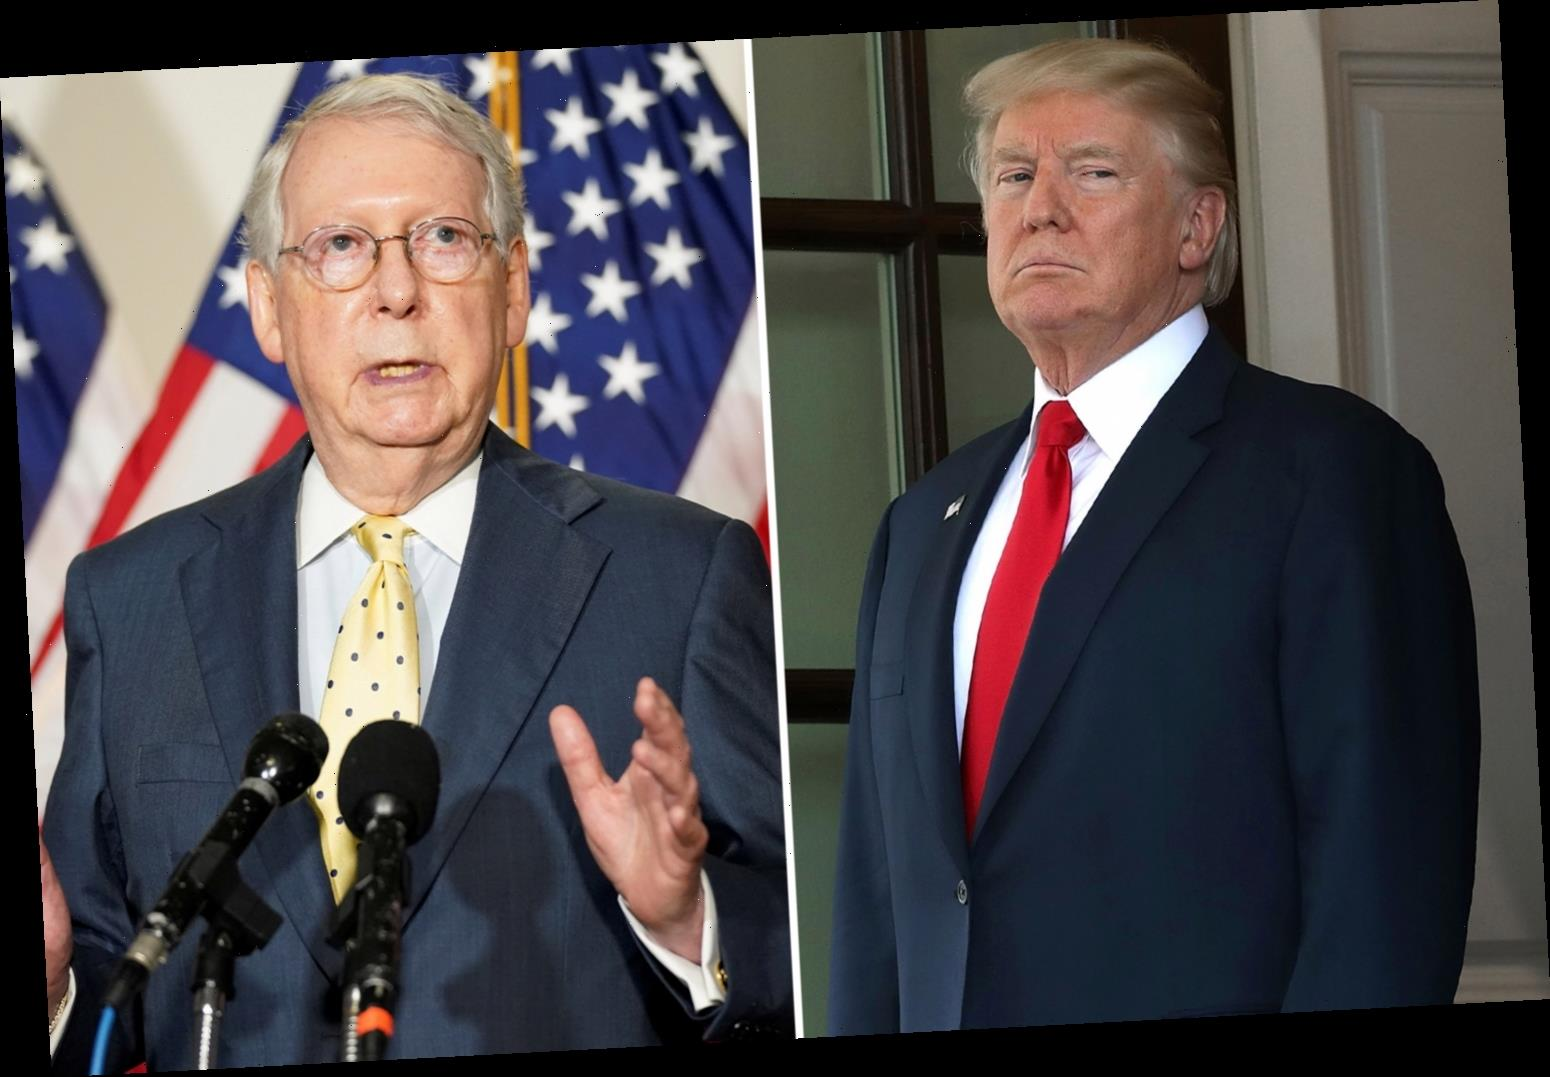 Mitch McConnell 'tells Trump NOT to make deal with Nancy Pelosi for new stimulus and $1,200 checks before election'